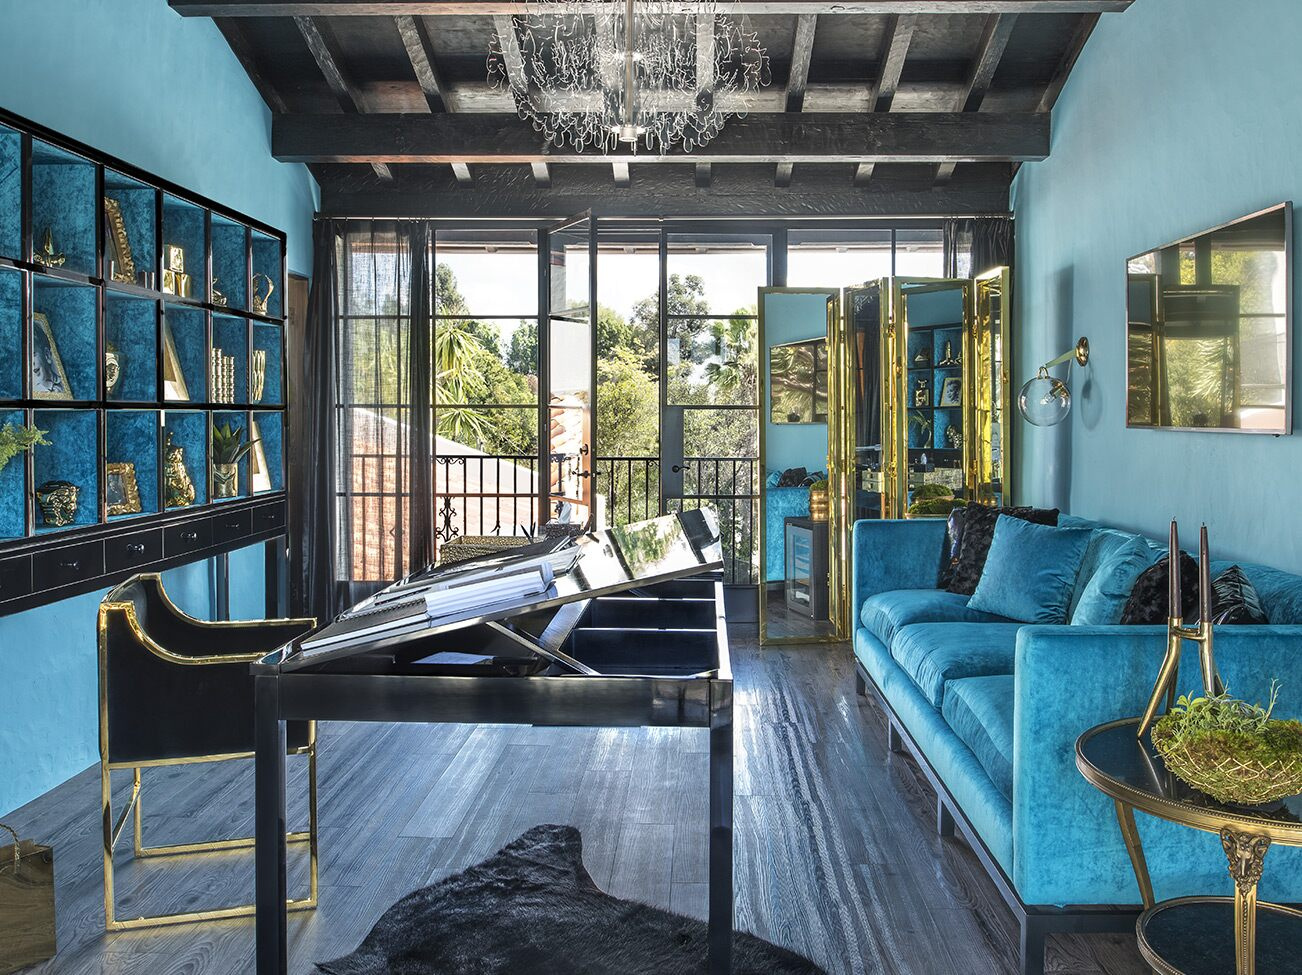 Turquoise-painted room with black beamed ceiling, blue tuxedo sofa, ebony tilt top desk, and doors opening to an exterior view.